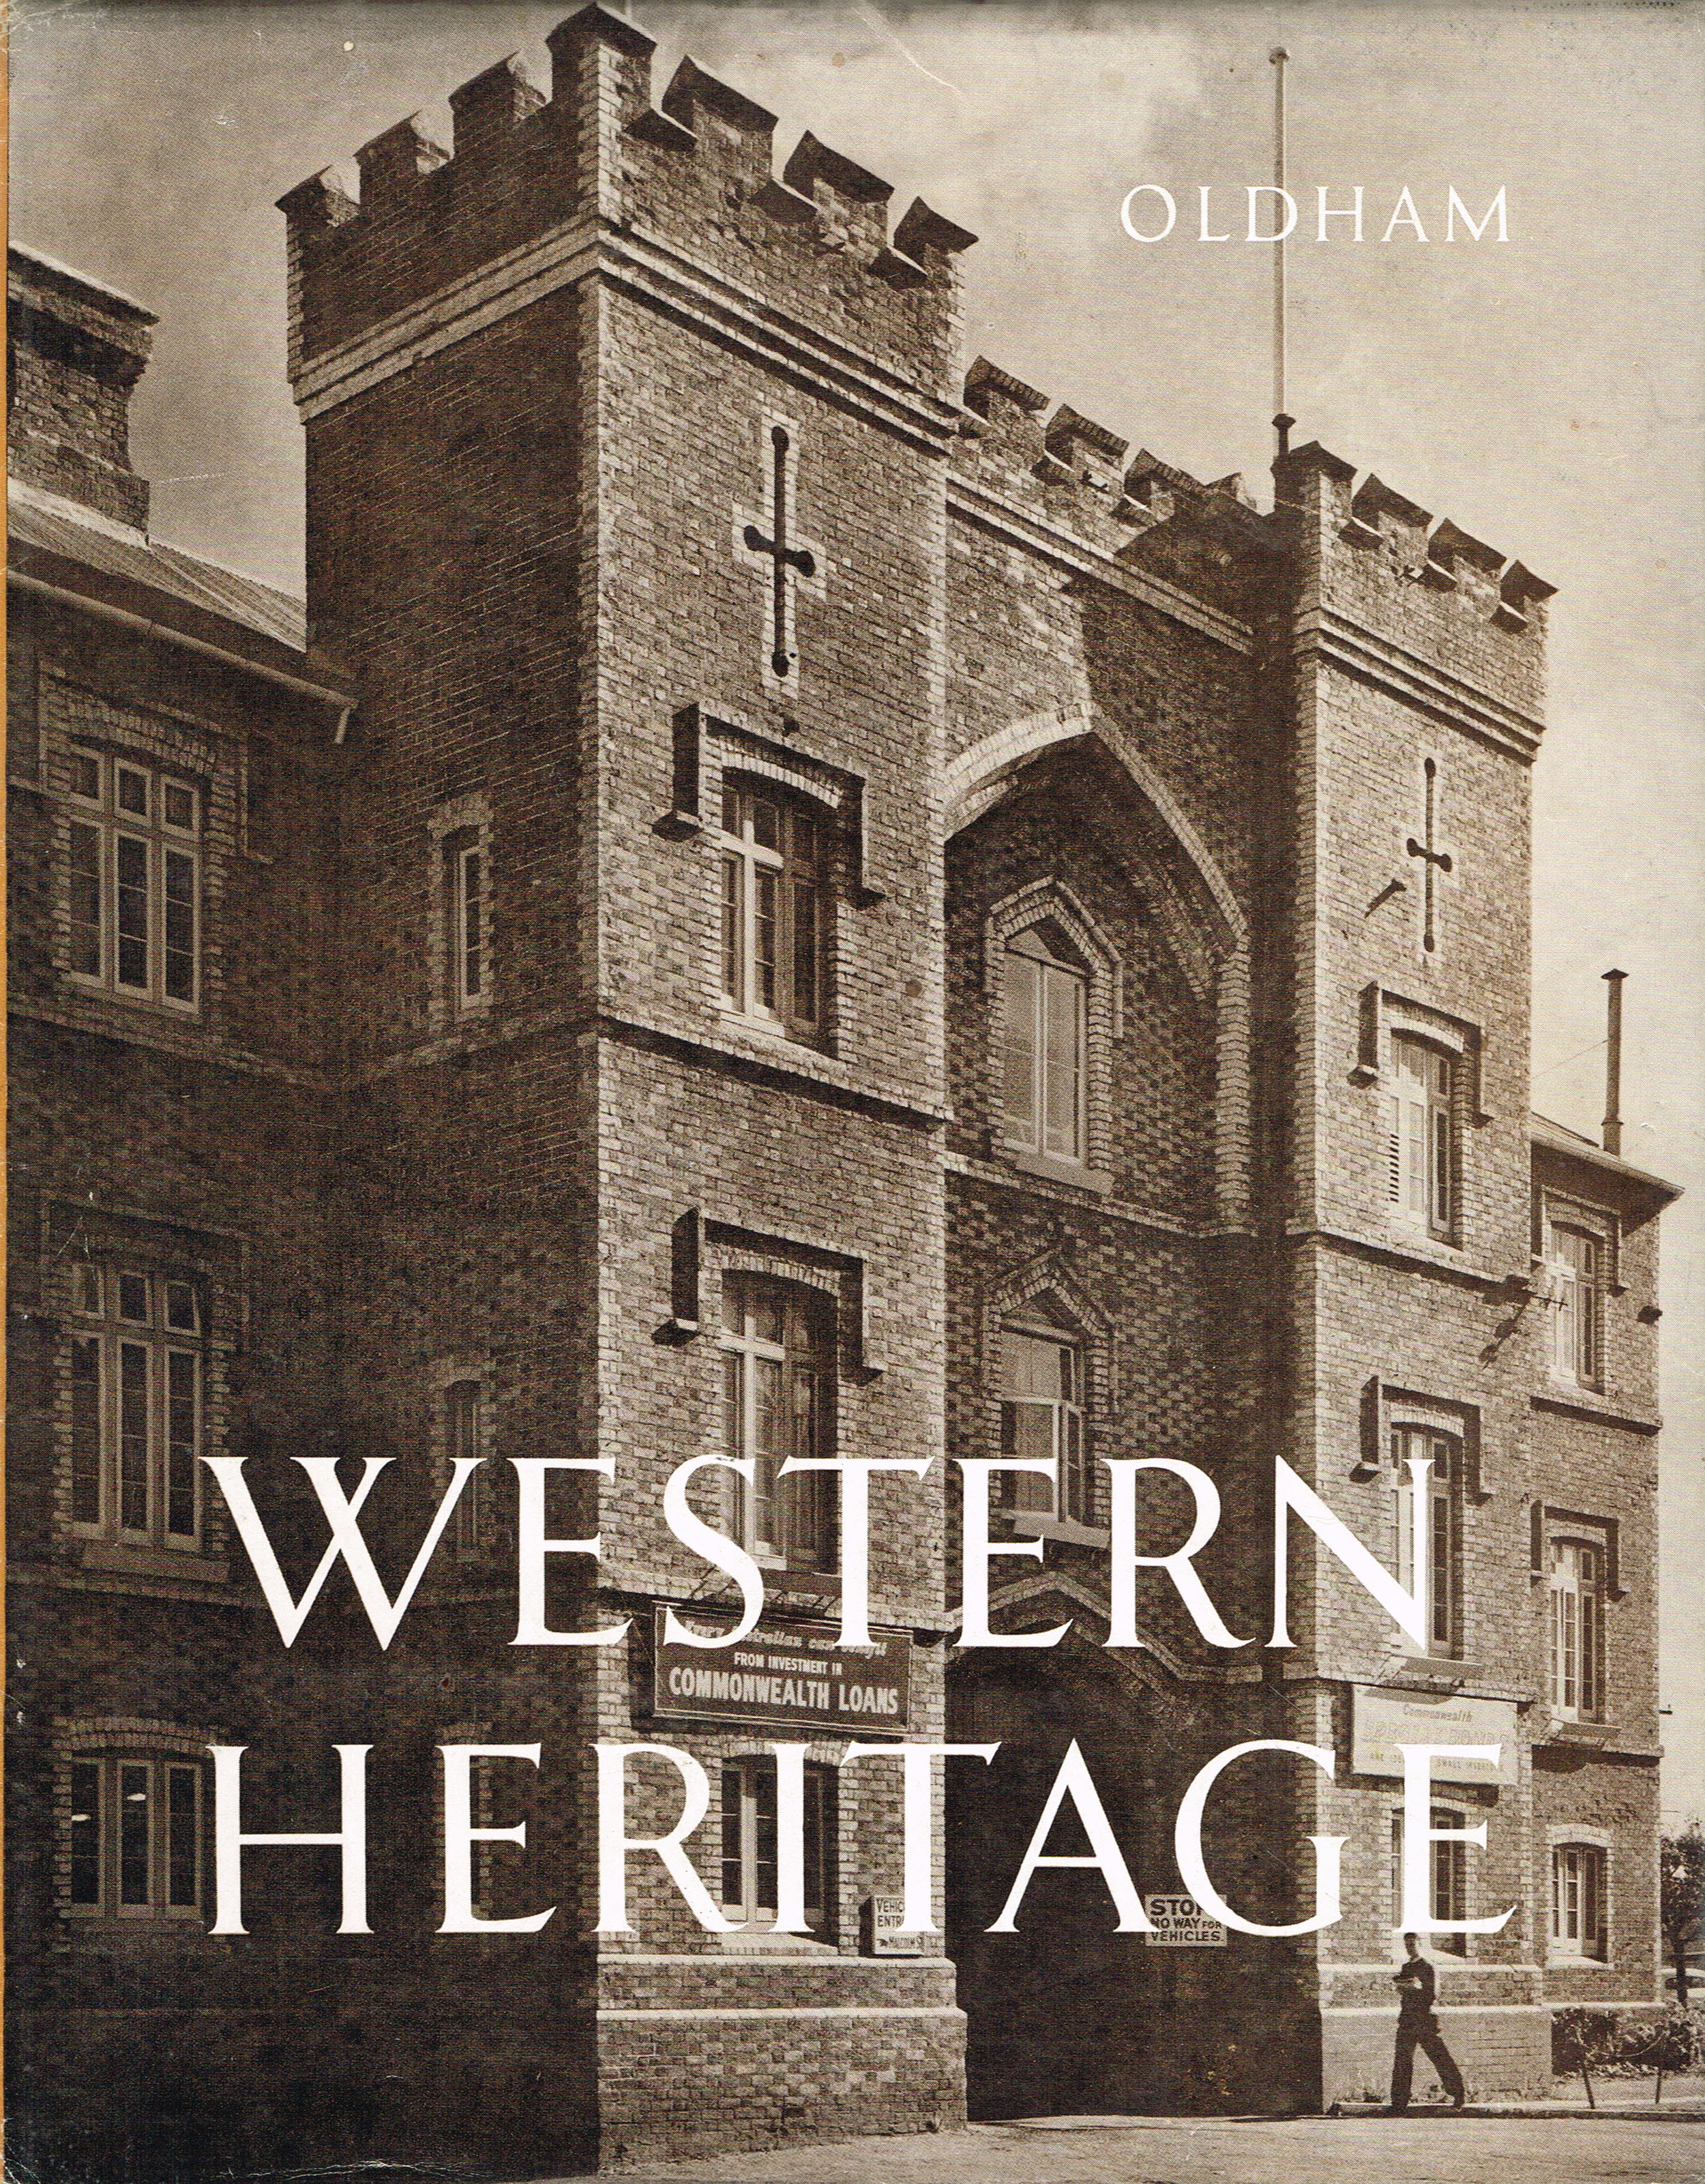 Western Heritage : A study of the colonial architecture of Perth, Western Australia   Ray and John Oldham